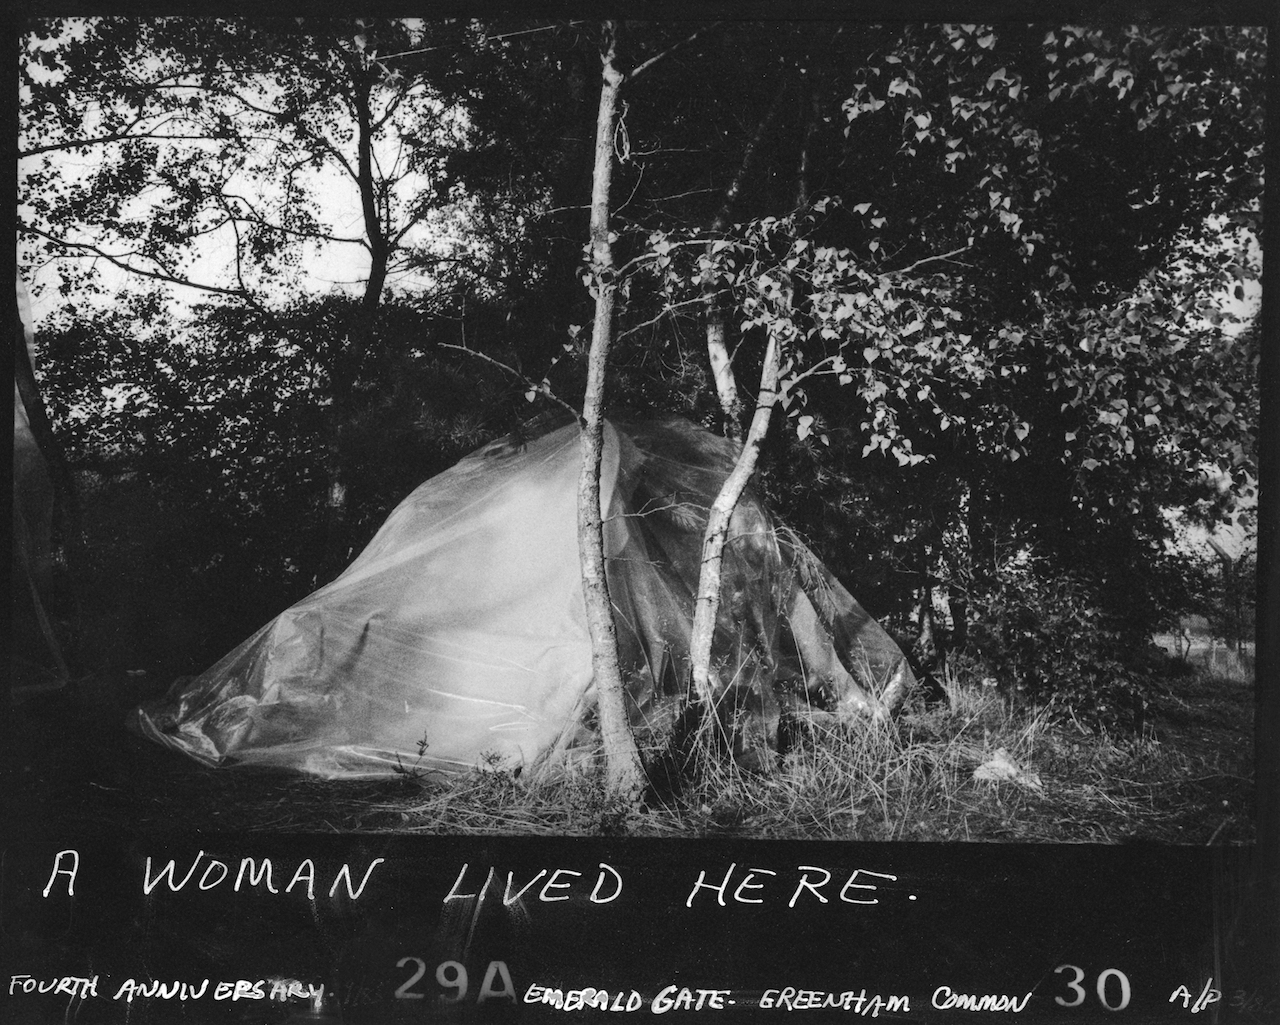 """Susan Kleckner, """"Untitled (A Woman Lived Here...)"""", Greenham Common Silver Print Series (1984) (courtesy of the Susan Kleckner Archive, Special Collections and University Archives, W.E.B. Du Bois Library, University of Massachusetts Amherst"""